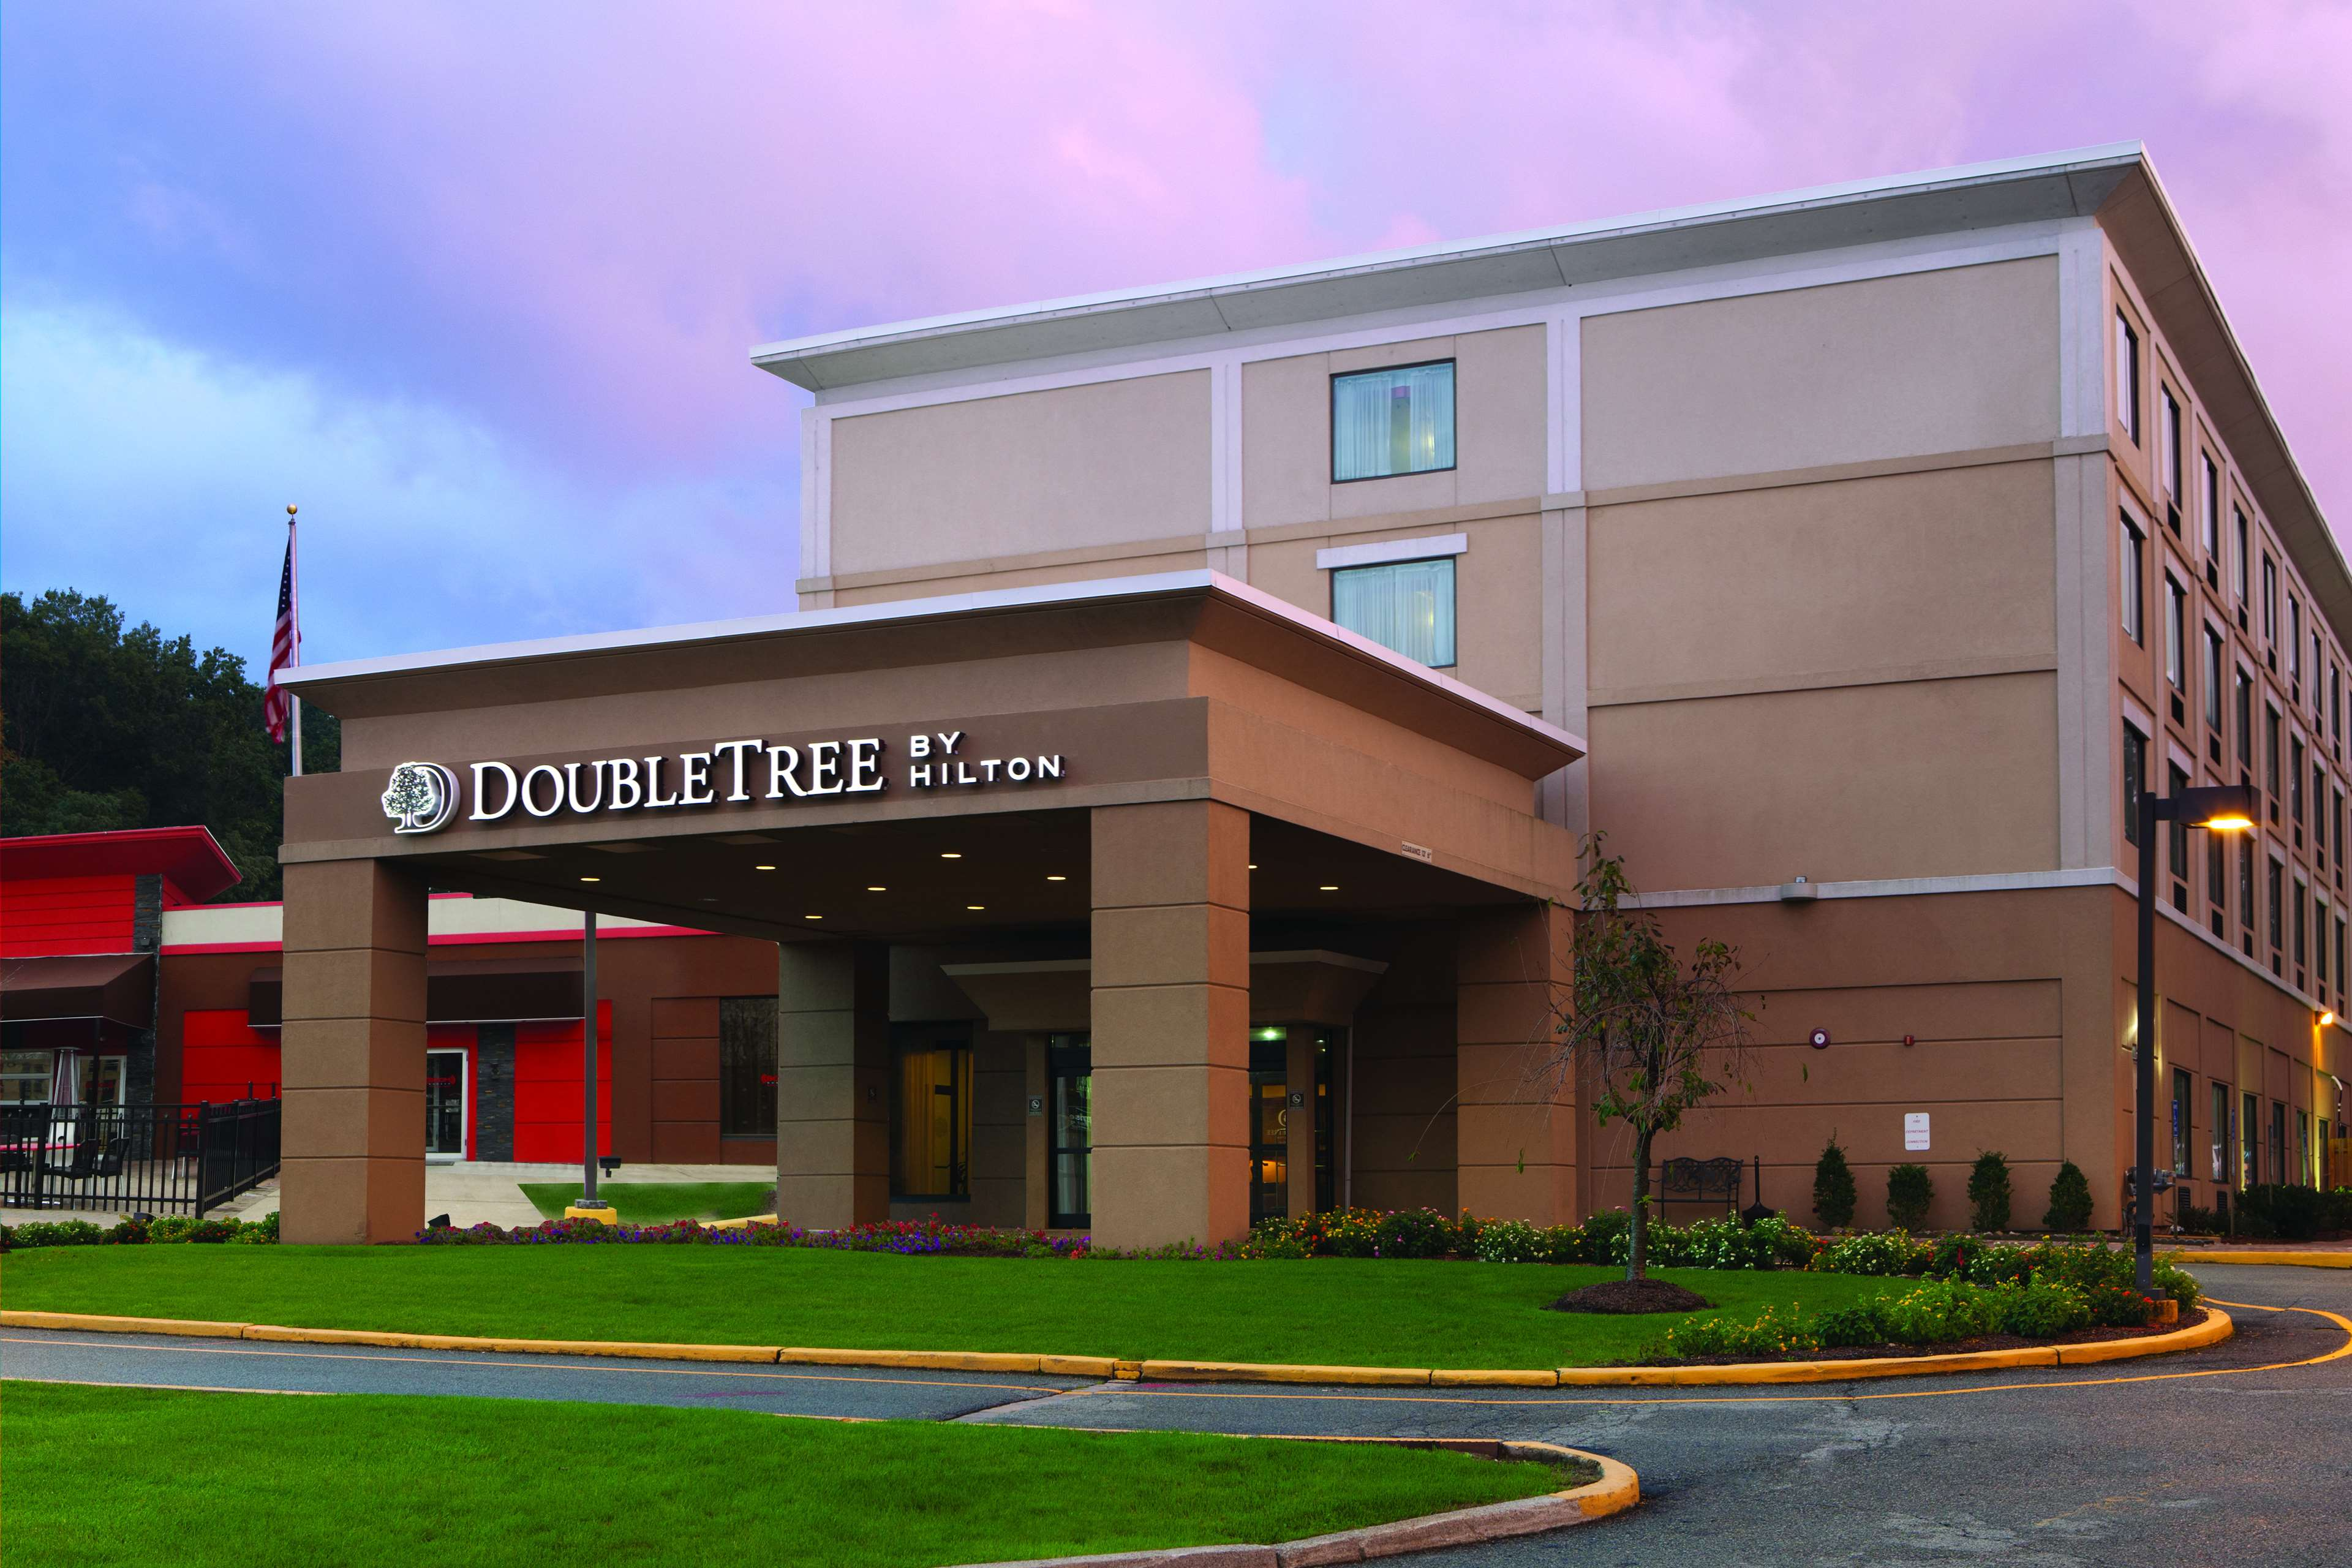 DoubleTree by Hilton Hotel Mahwah image 0